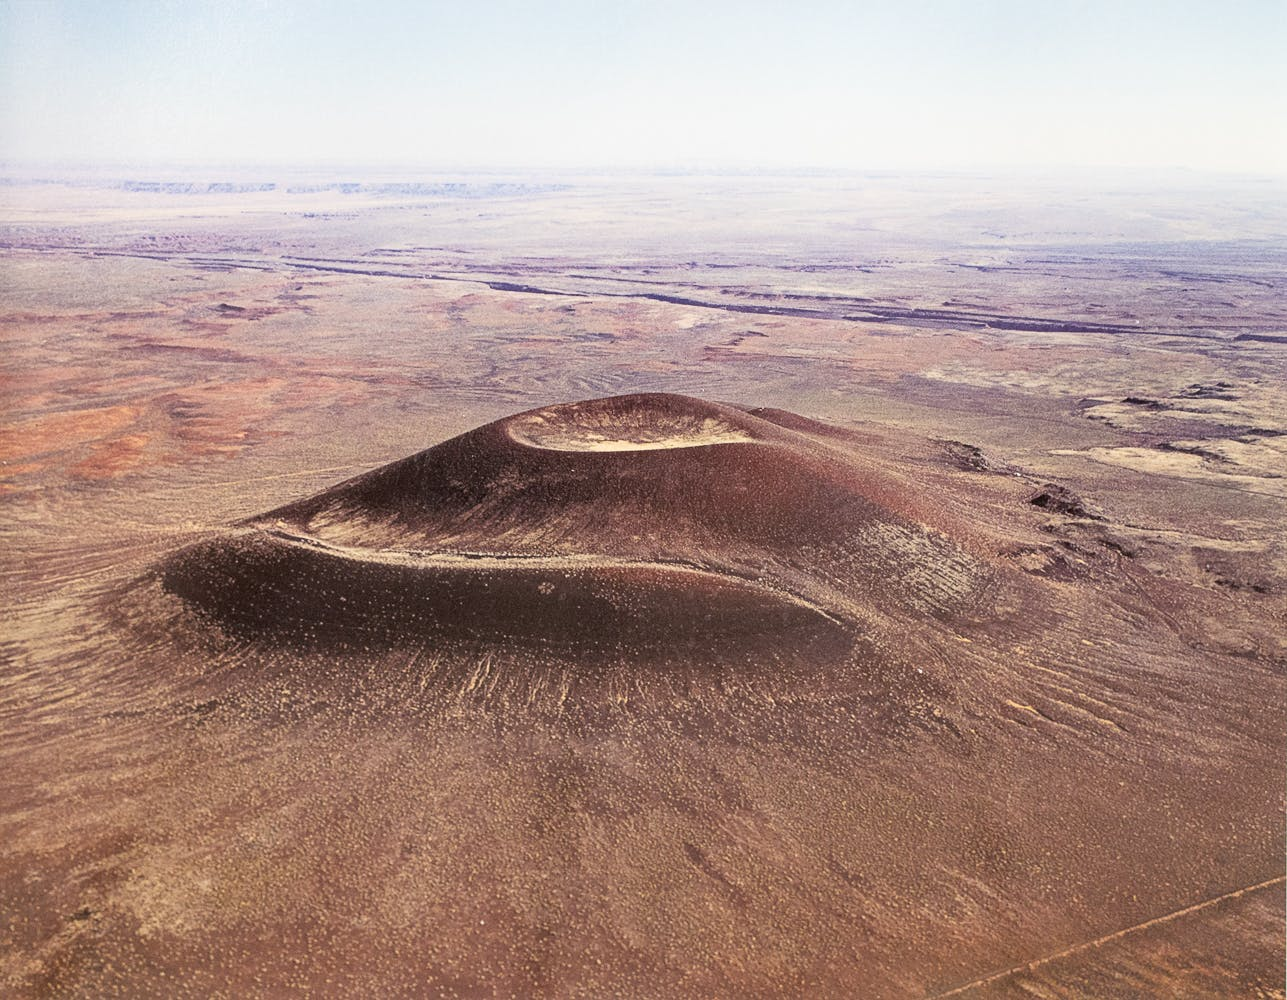 James Turrell to finally open his latest art installation at Roden Crater in the Arizona Desert